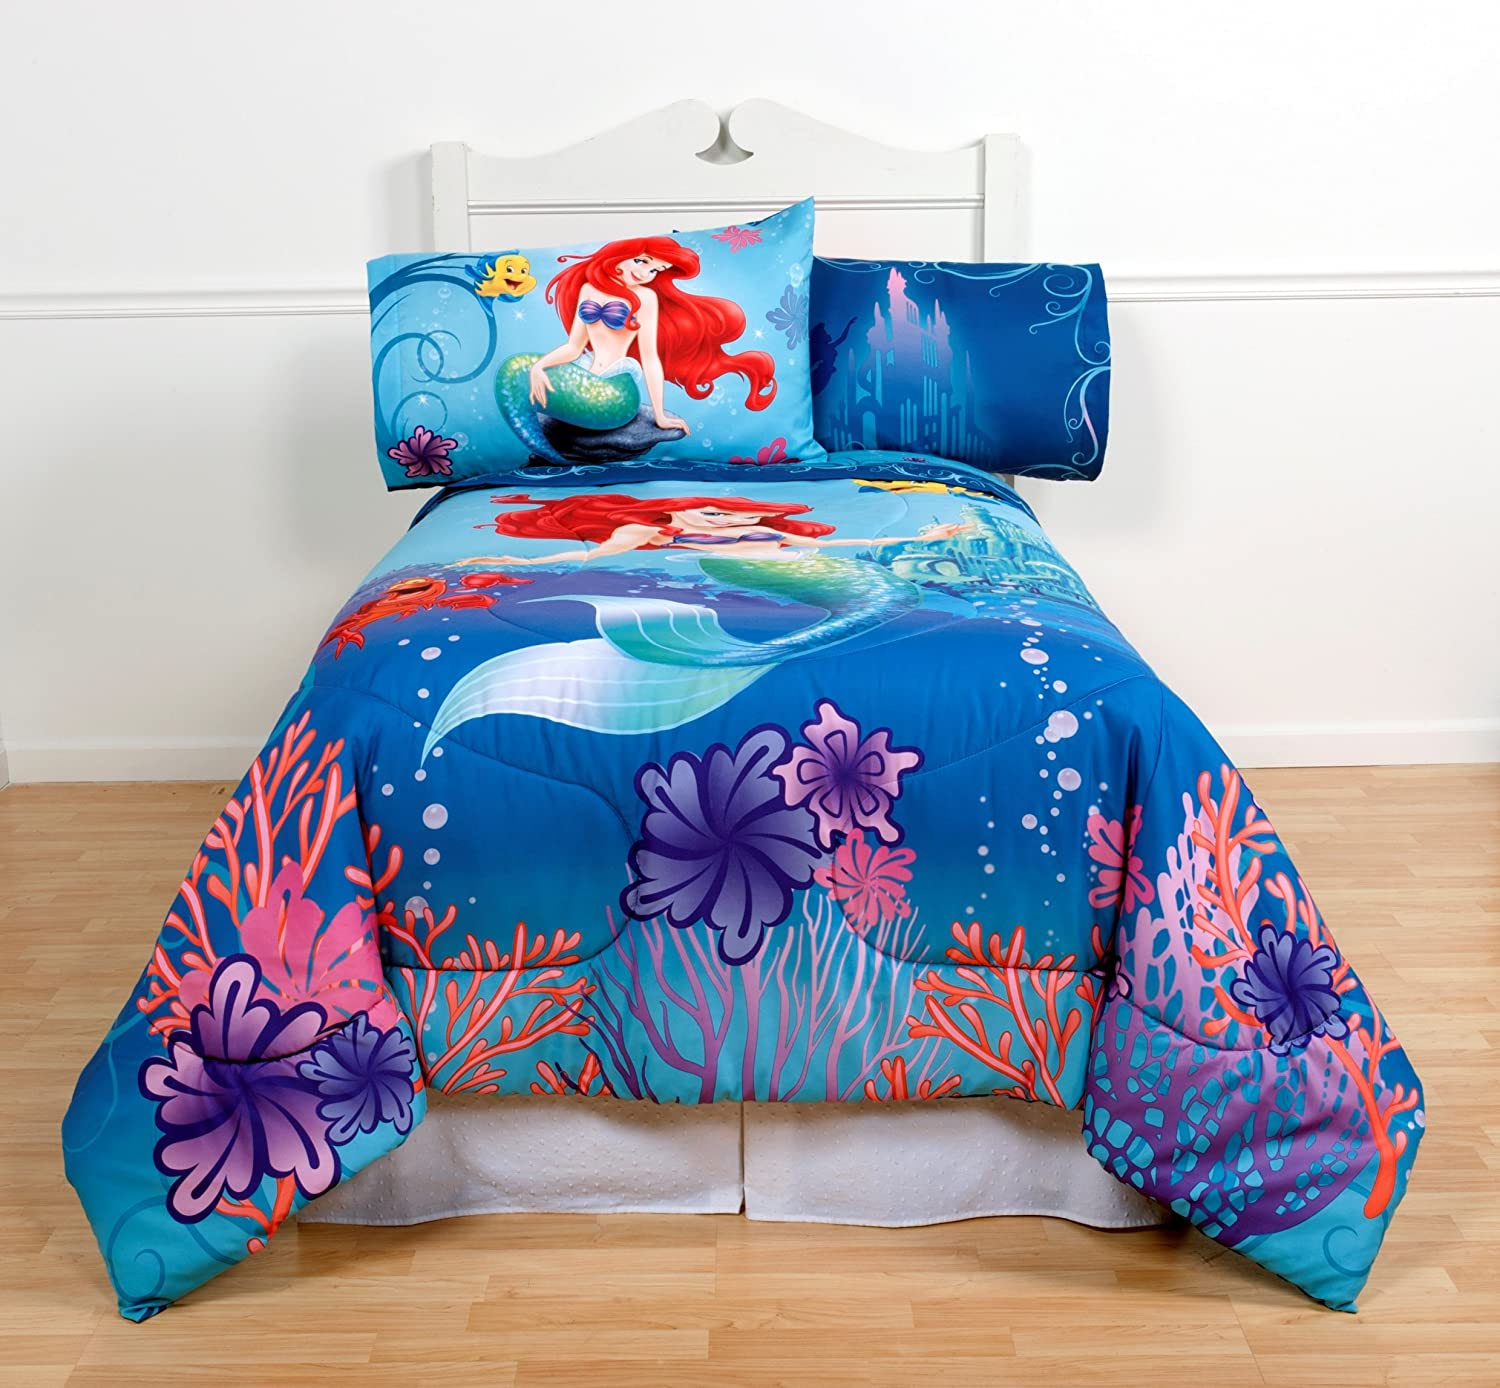 The Little Mermaid Quilt Cover Set